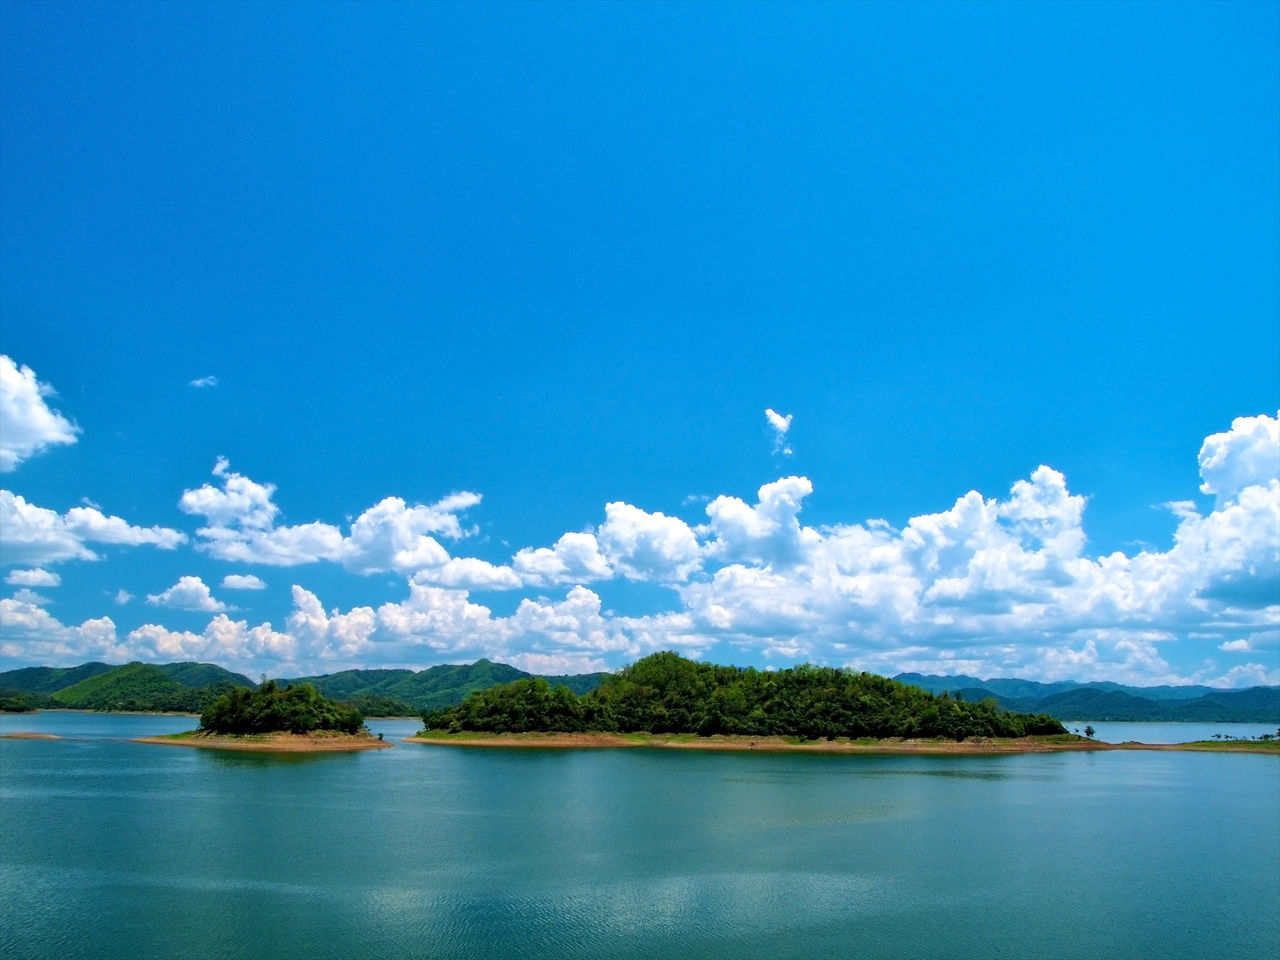 scenics, beauty in nature, water, sky, nature, tranquil scene, cloud - sky, blue, waterfront, tranquility, outdoors, day, sea, no people, tree, mountain